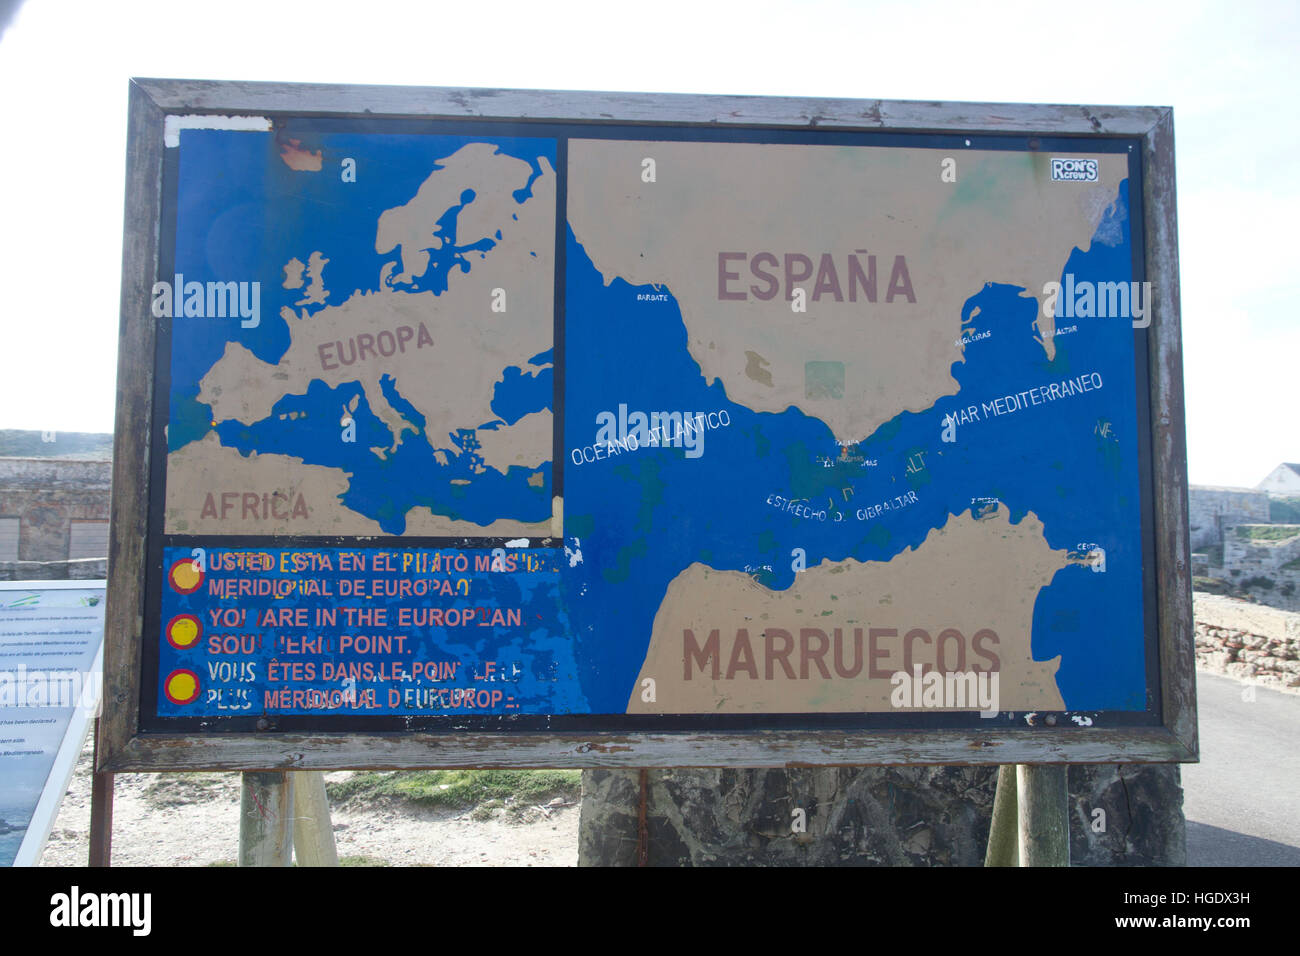 Tarifa Map Spain Stock Photos Tarifa Map Spain Stock Images Alamy